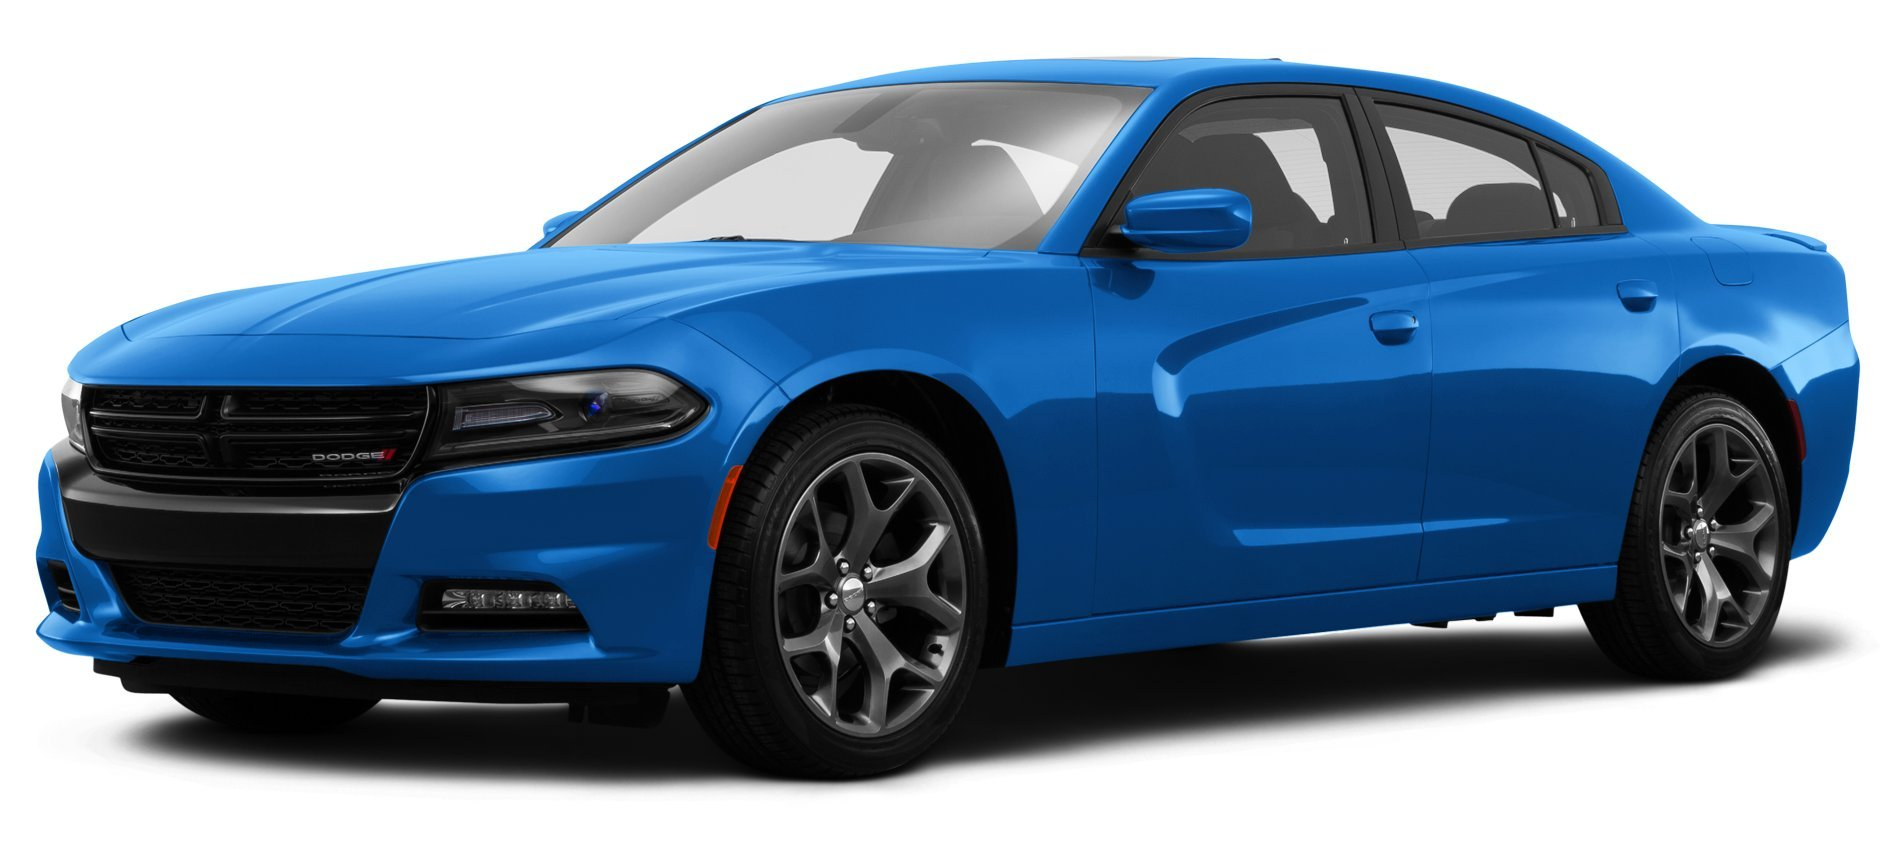 2016 dodge charger reviews images and specs. Black Bedroom Furniture Sets. Home Design Ideas